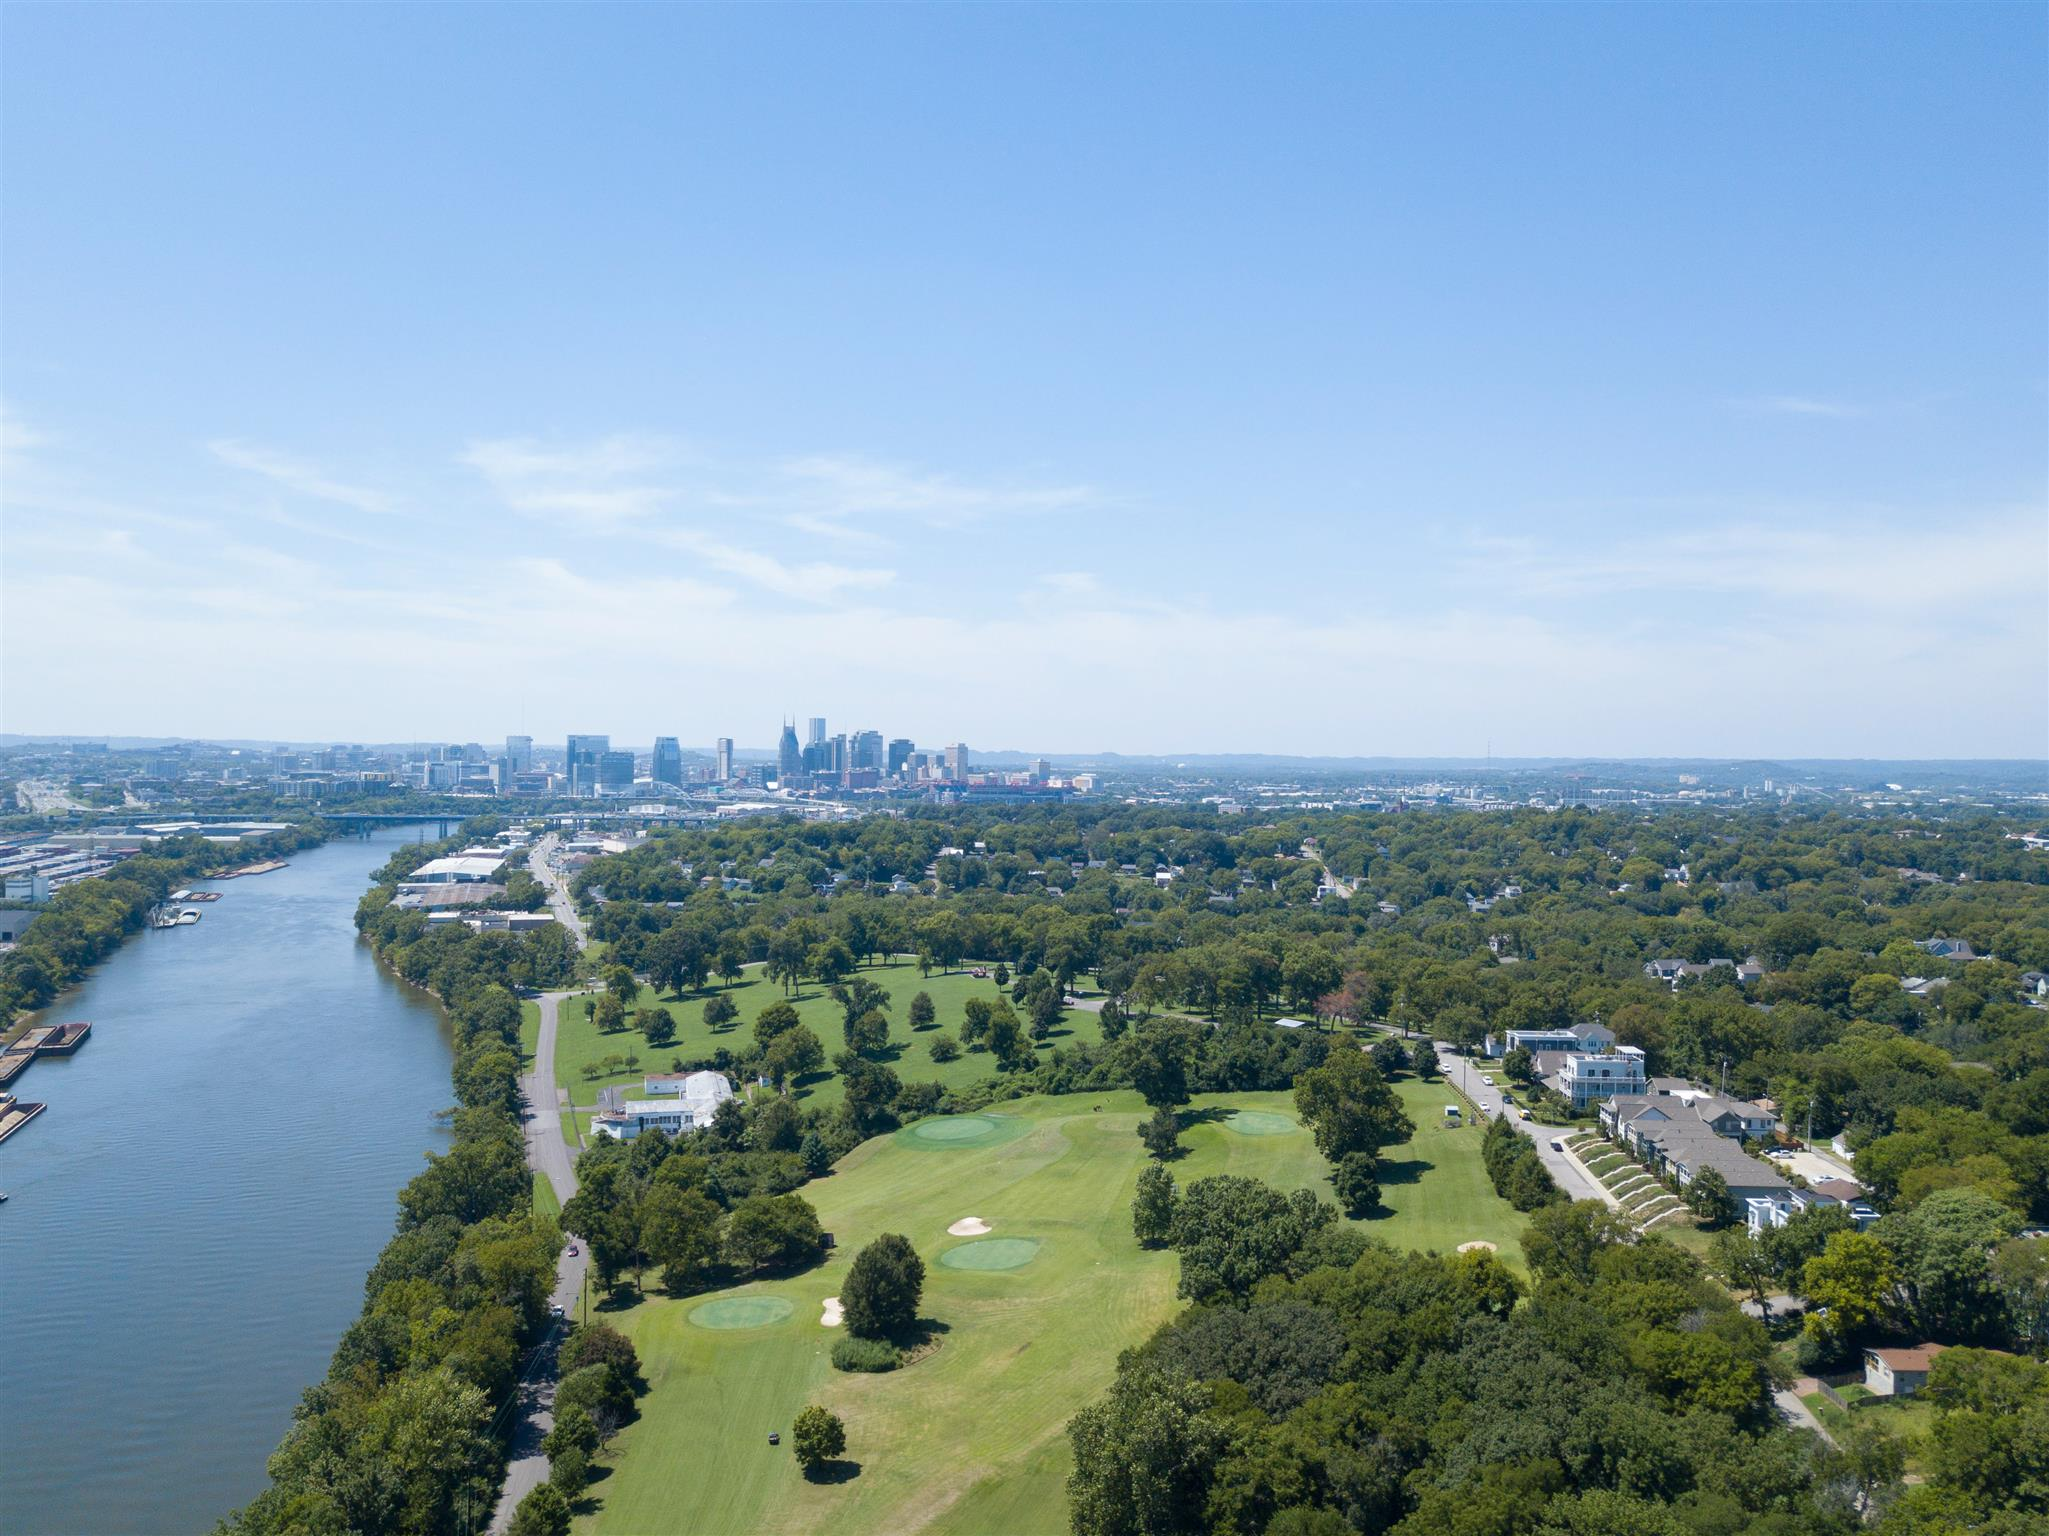 Sweeping view of Downtown Nashville, The Cumberland River, and Shelby Golf course. Hot tub, kitchen and fire pit on rooftop. Wrap around porches, Savant surround sound on all floors, corner lot, fully fenced in yards. 3 car garage. 2200 sq ft of outdoor space! Security and NEST, 4br/4ba, game room, 2 fireplaces, storm Shelter, huge close & storage